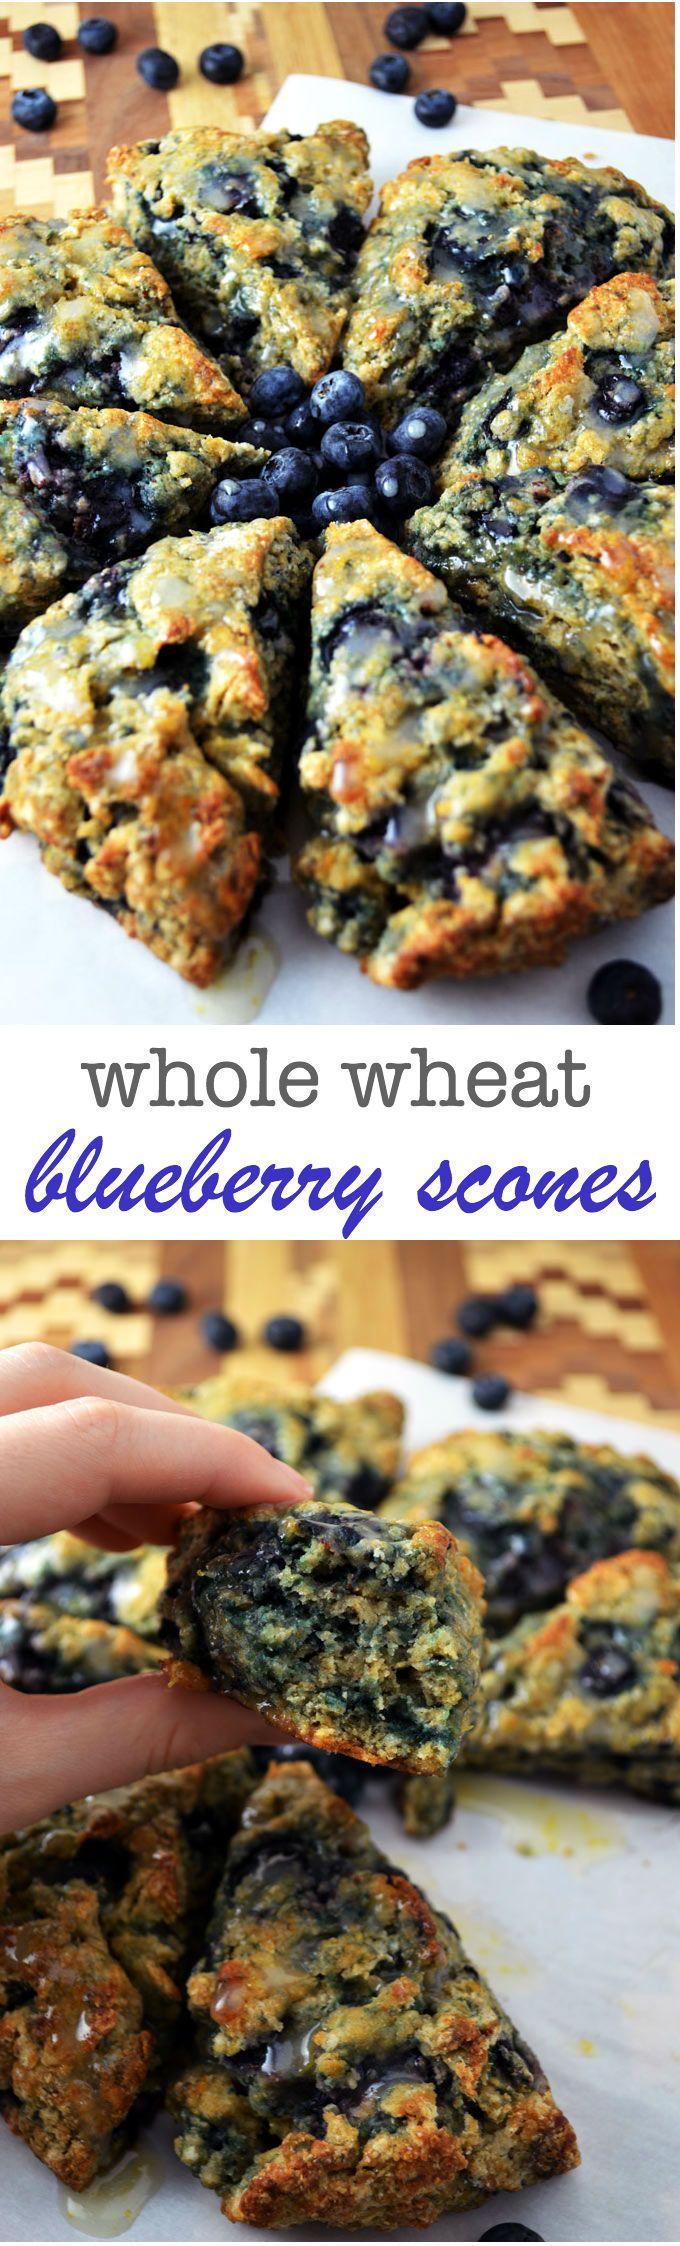 1000+ ideas about Blueberry Crunch on Pinterest | Blueberries, Crunch ...